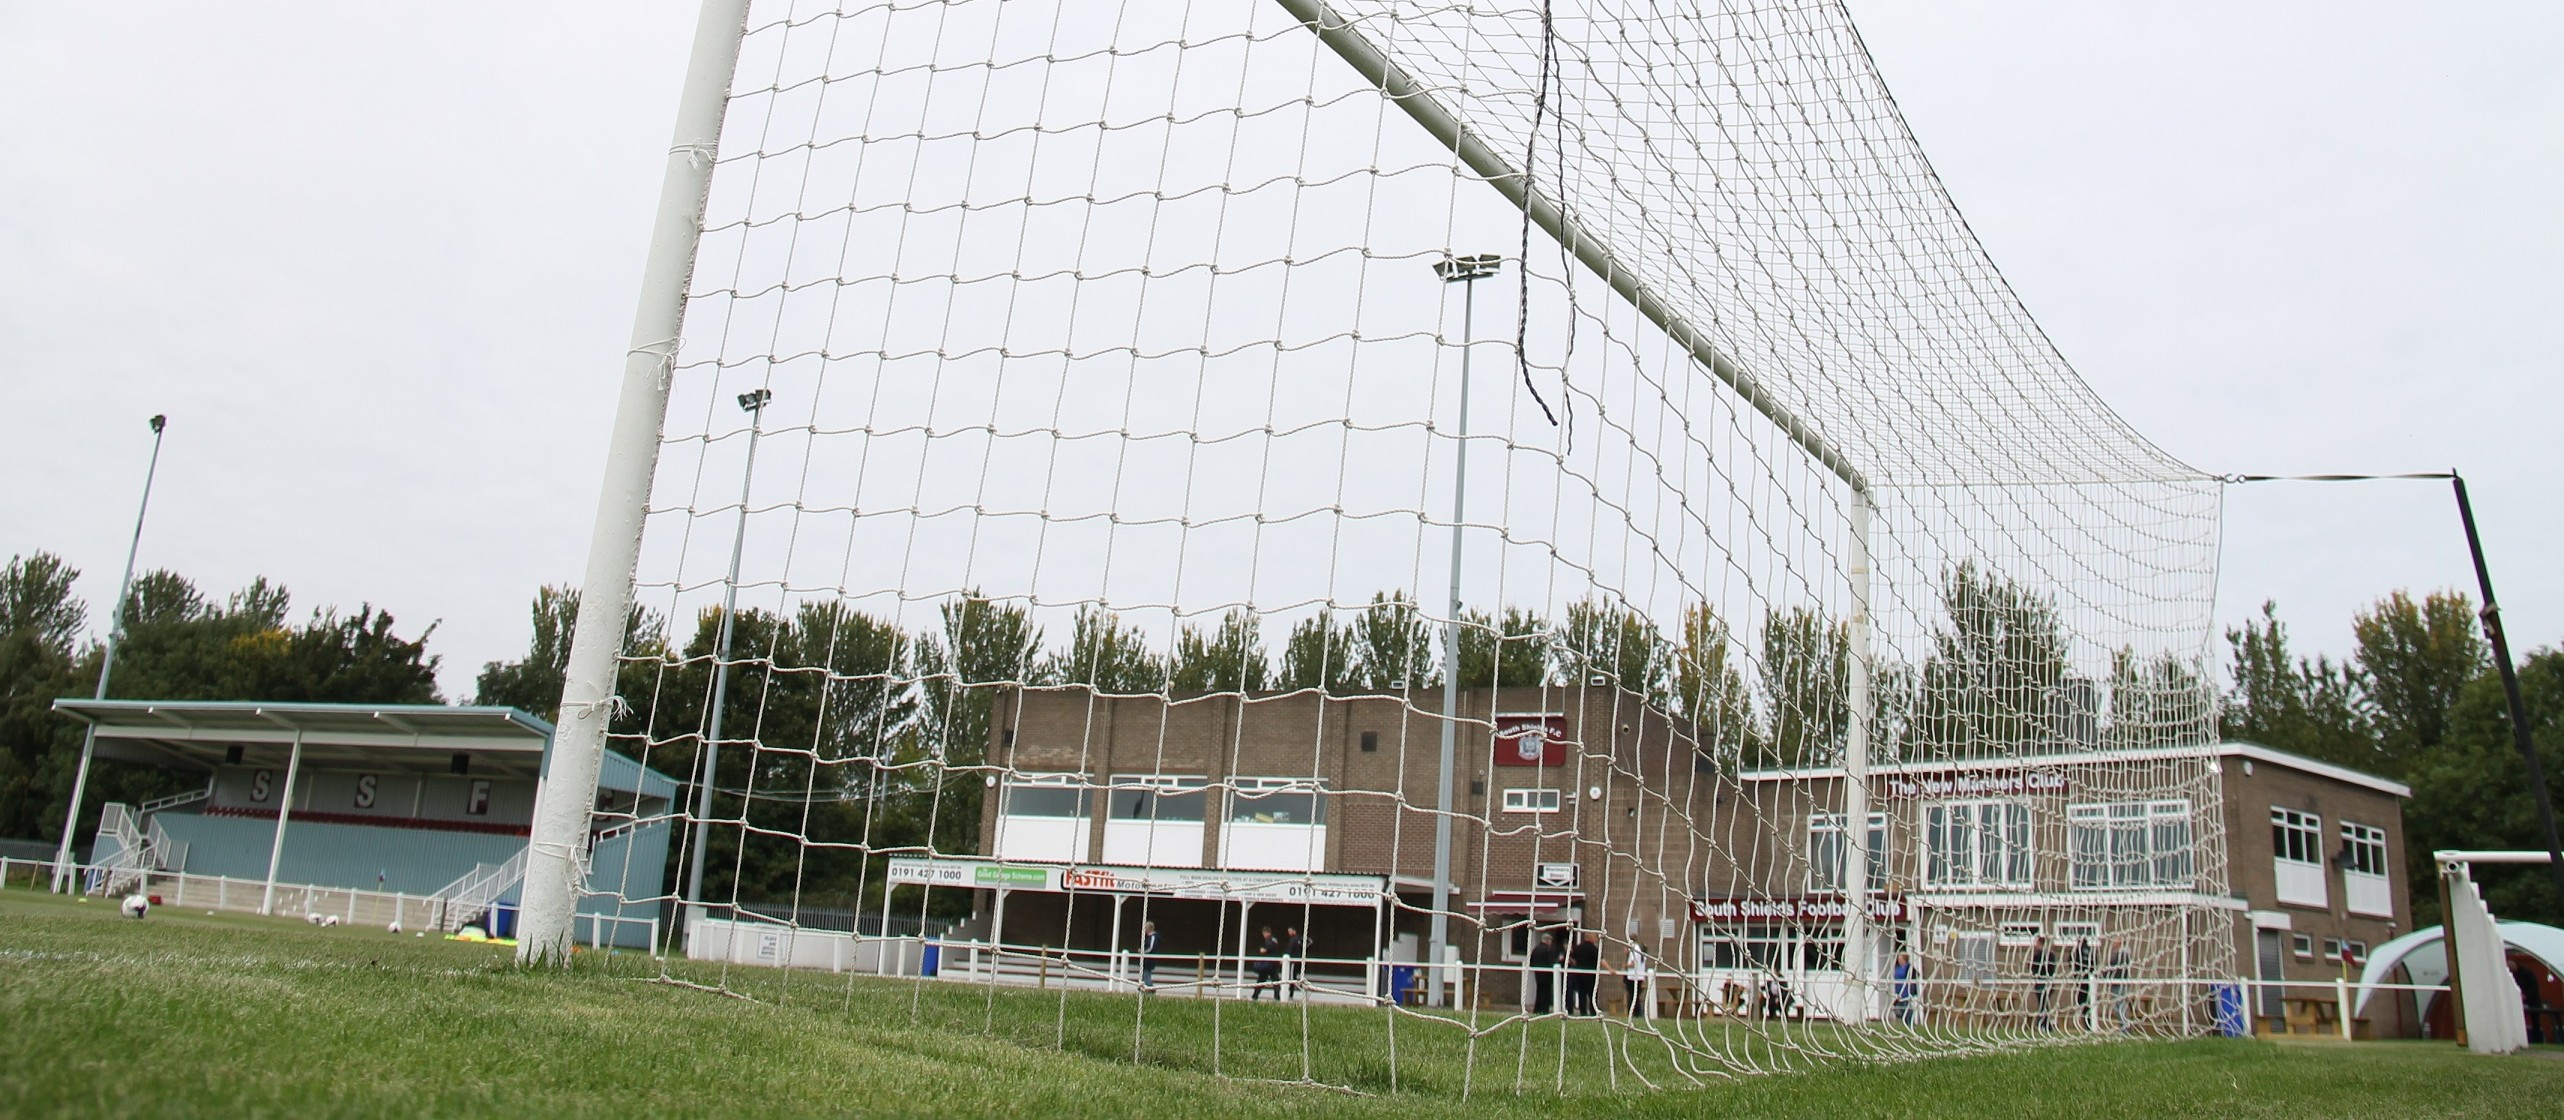 South Shields vs Morpeth Town: Game postponed